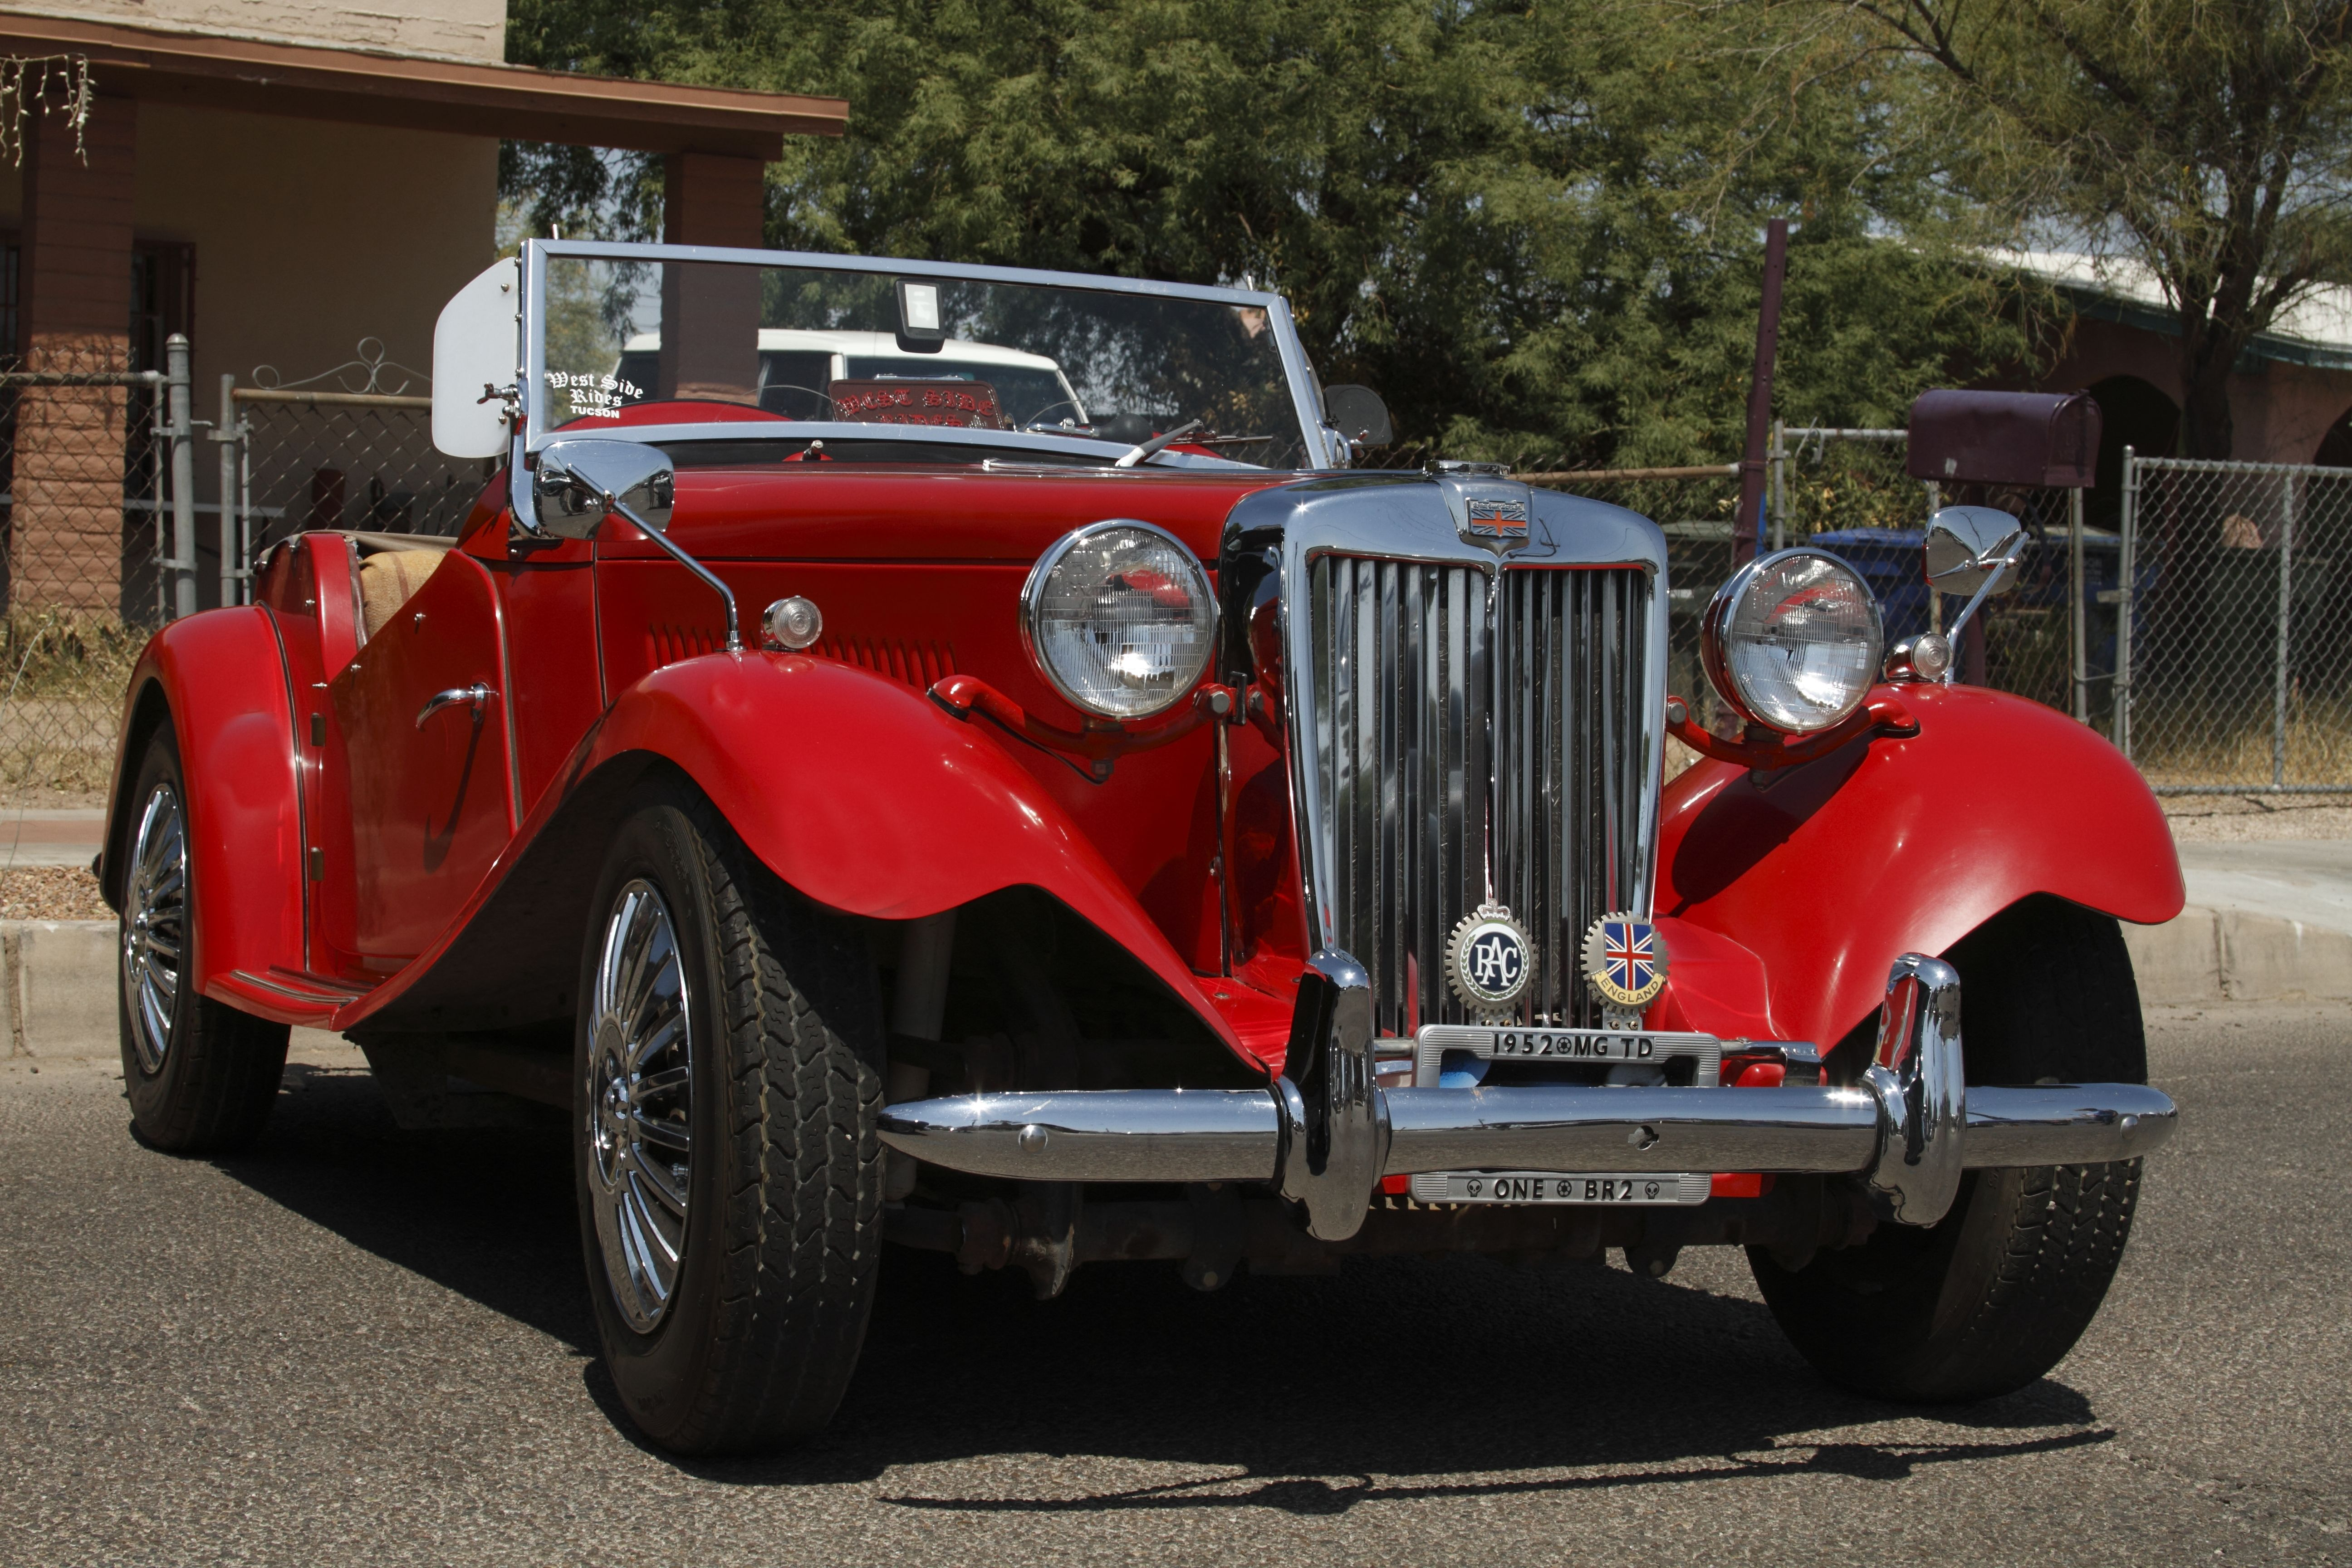 Classic MG MG-TD Replicas for Sale - Classics on Autotrader